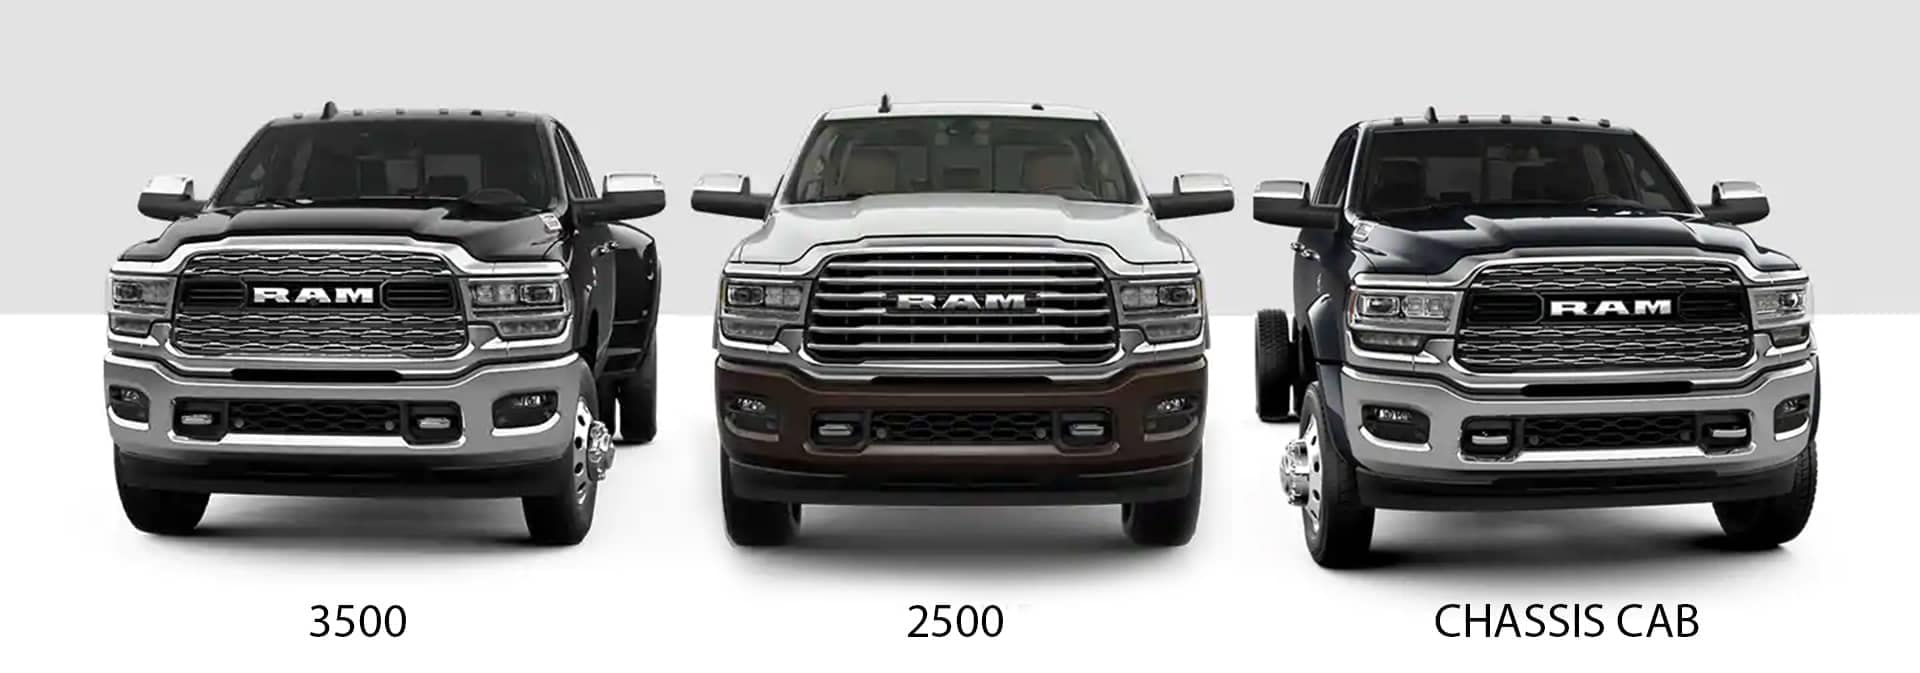 2019 RAM 2500 3500 and Chassis Cab